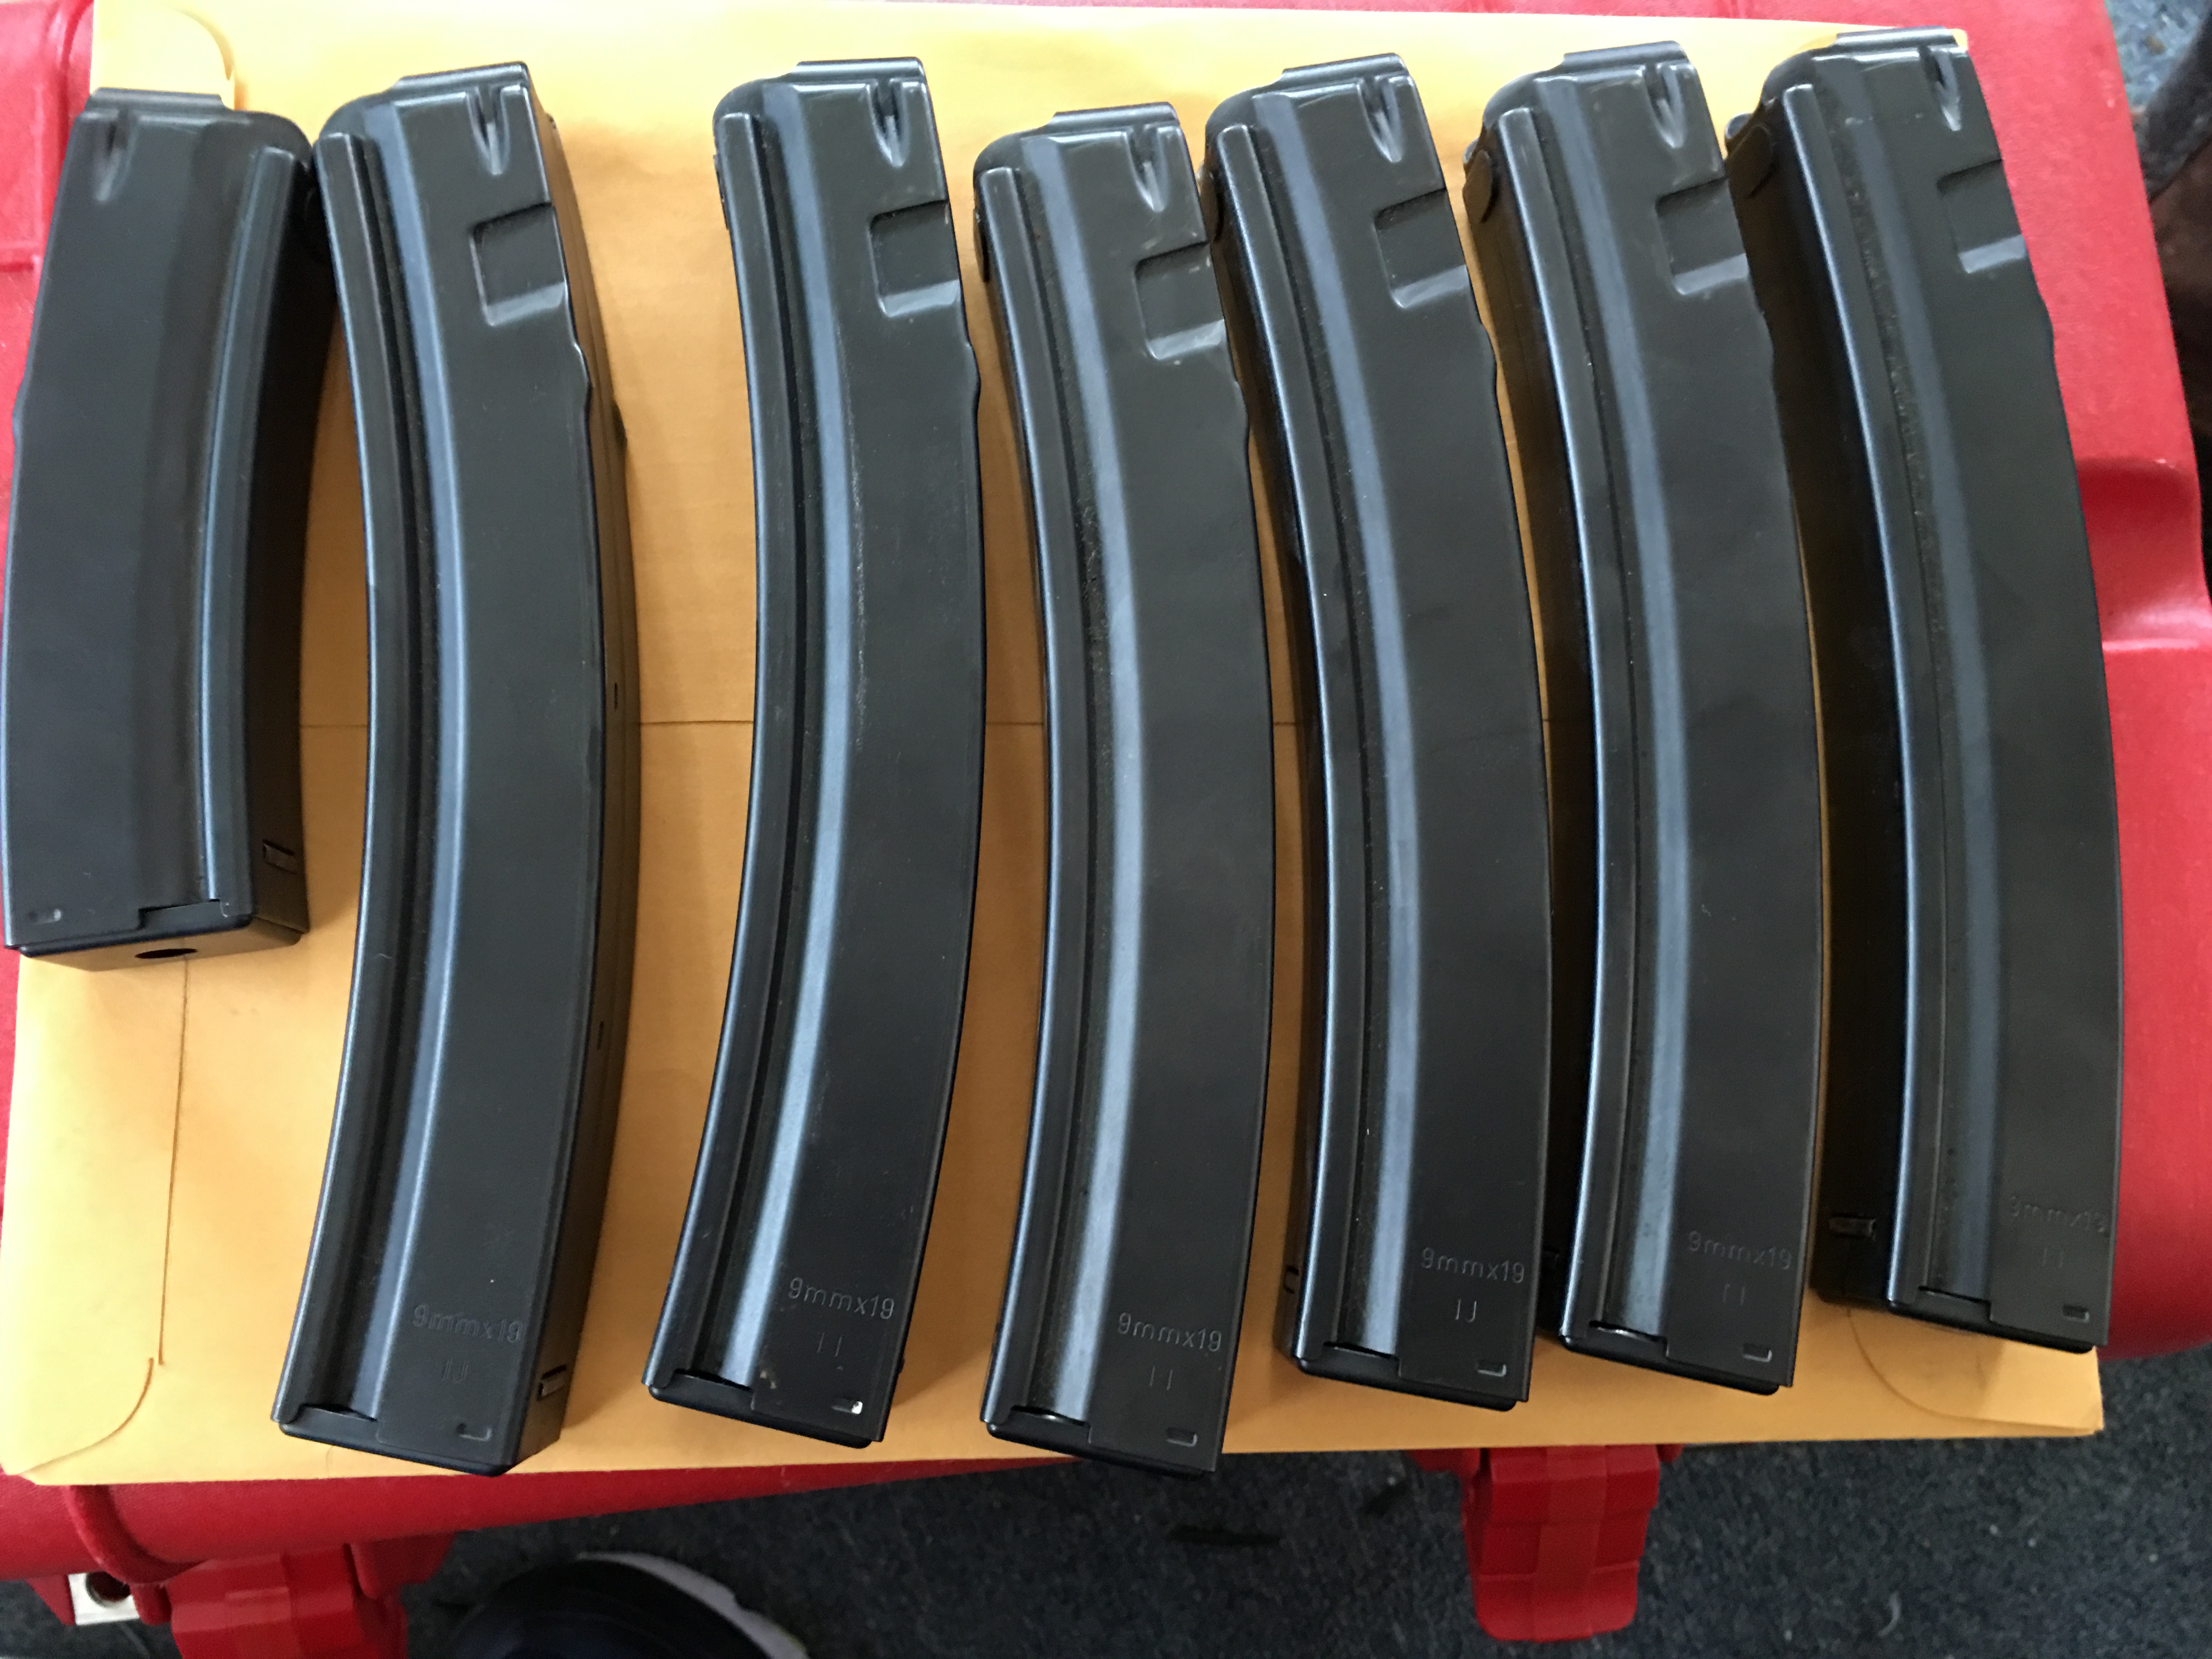 WTS: HK factory mp5 30 rd mags NIW / HK factory VP9/P30 15 rd mags NIW-img_1918.jpg